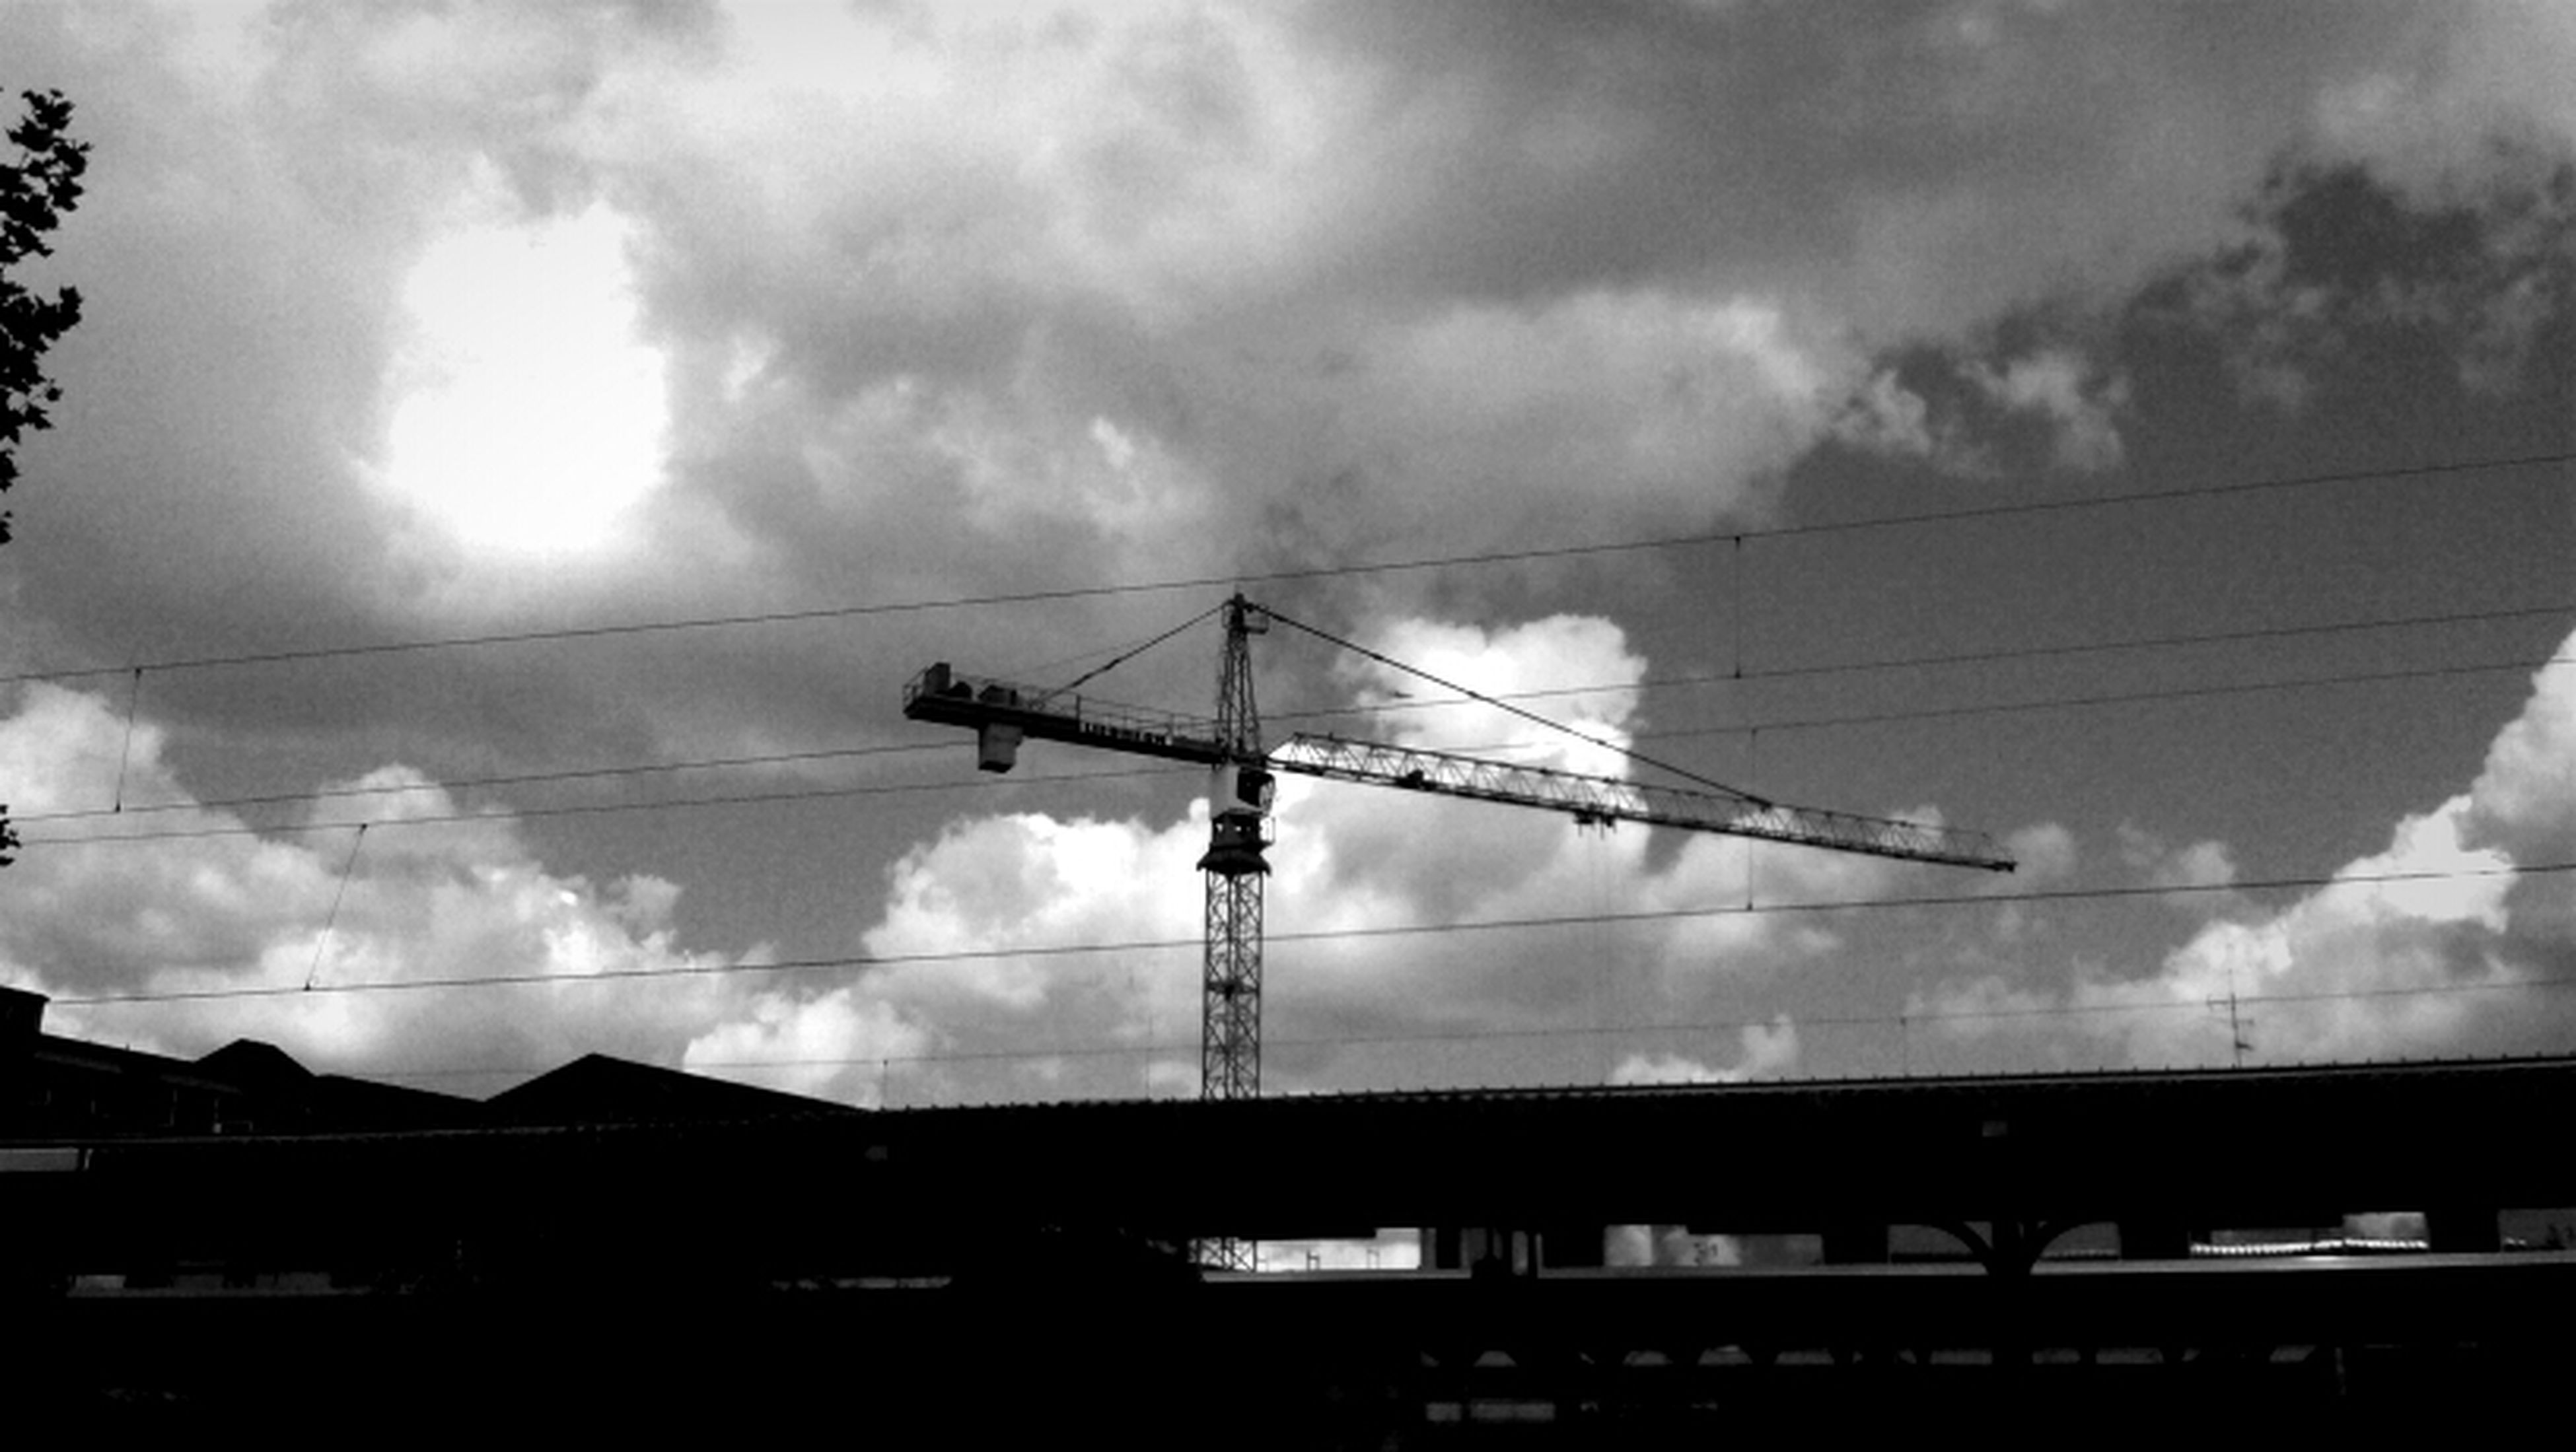 sky, low angle view, cloud - sky, connection, silhouette, cloudy, power line, electricity pylon, electricity, power supply, built structure, cable, cloud, fuel and power generation, technology, architecture, weather, crane - construction machinery, dusk, sunset